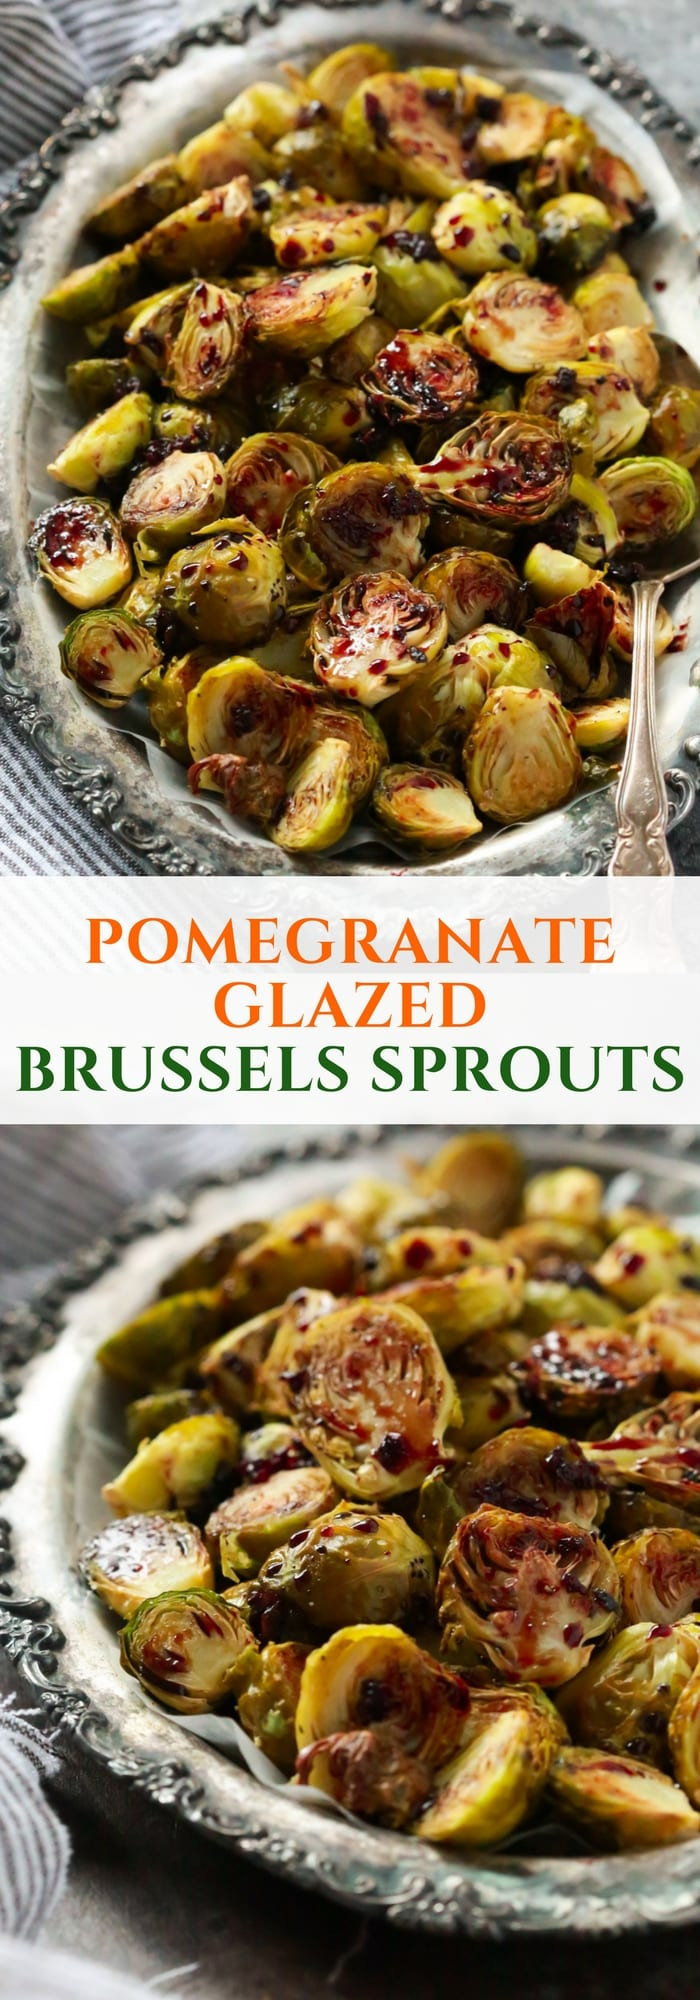 These Pomegranate Glazed Brussels Sprouts are made in the oven and toss with a 2-ingredient Pomegranate glazed (pomegranate juice and soy sauce). It's easy, quick and very delicious.